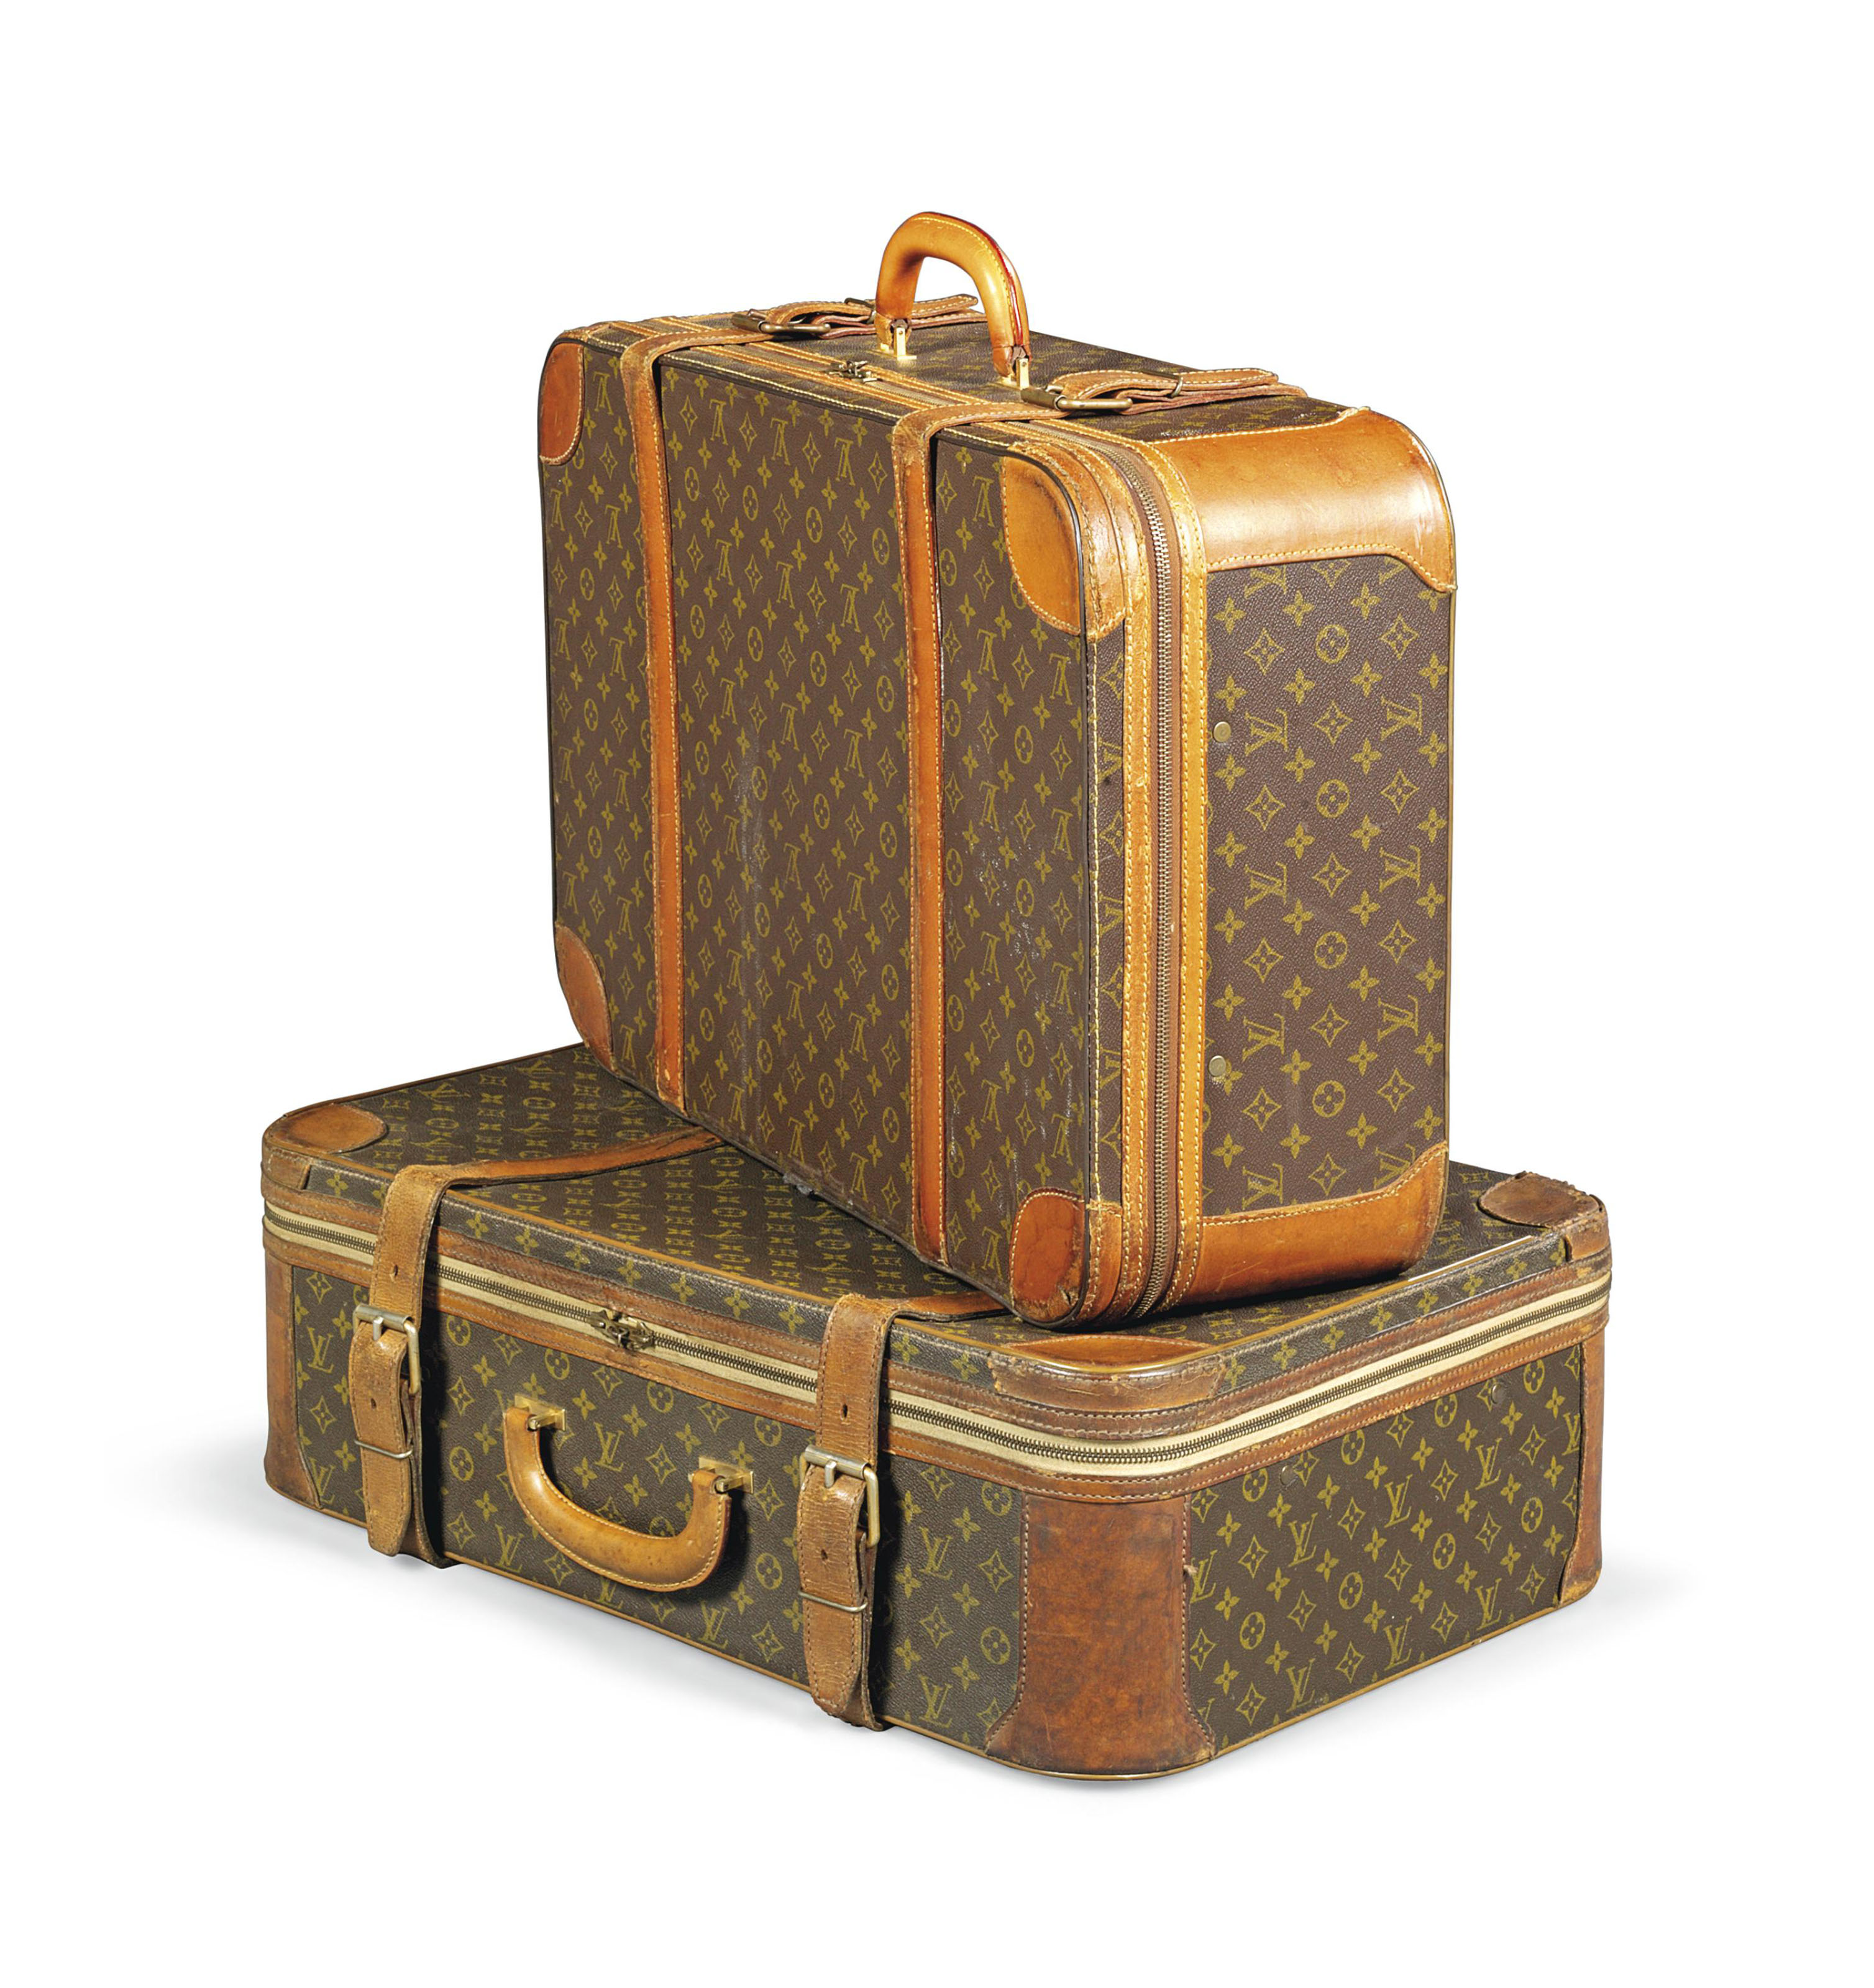 A PAIR OF SOFT SIDED SUITCASES IN MONOGRAM CANVAS